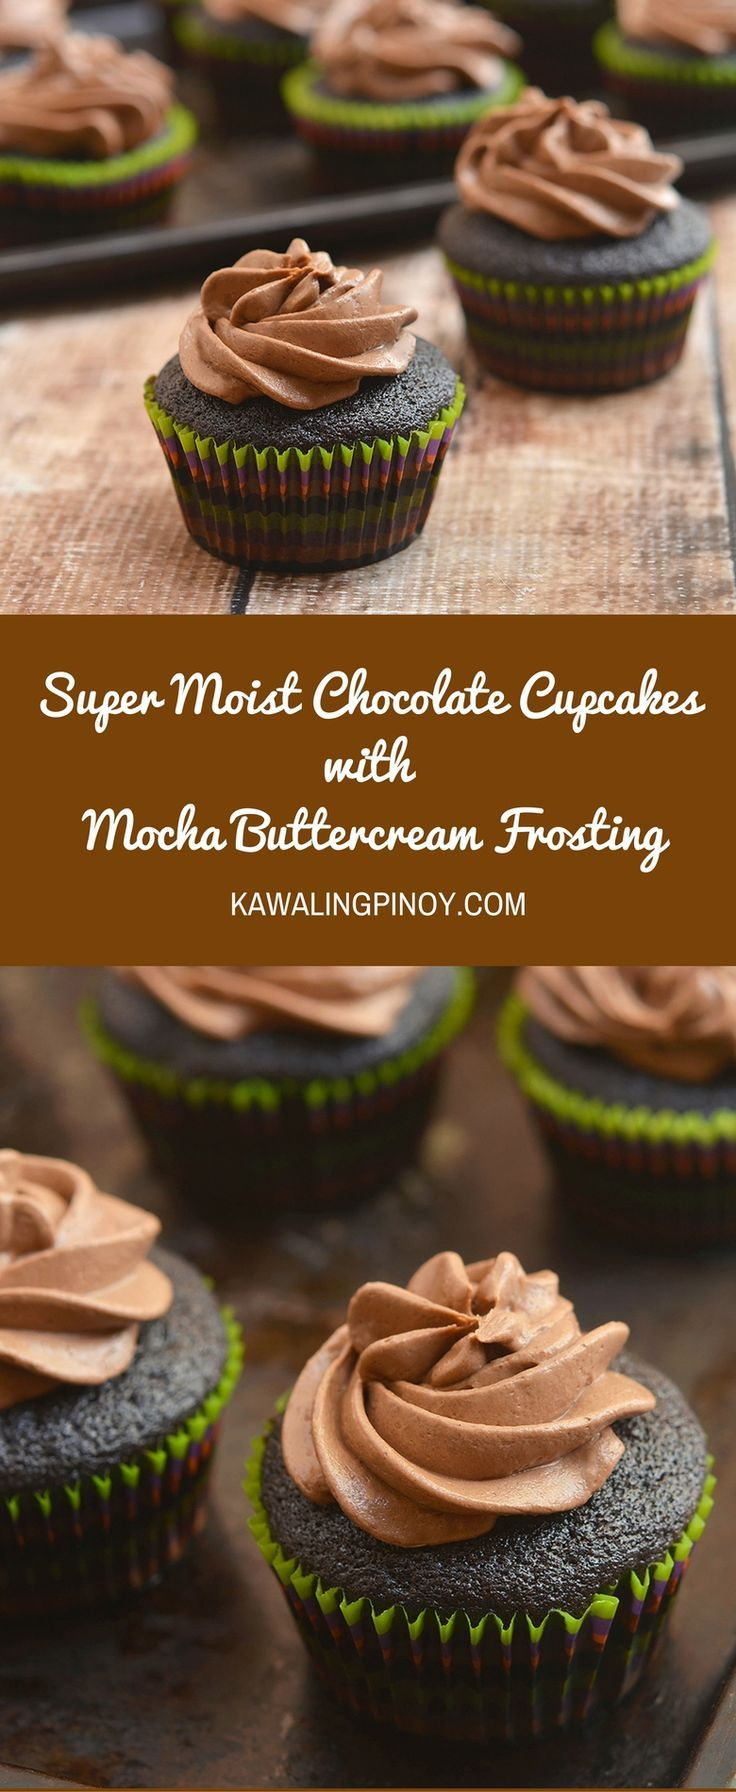 Super Moist Chocolate Cupcakes with Mocha Buttercream Frosting are the quickest and easiest cupcakes you can make. Moist, chocolatey and with a delicious mocha buttercream frosting, they're sure to be everyone's favorite!